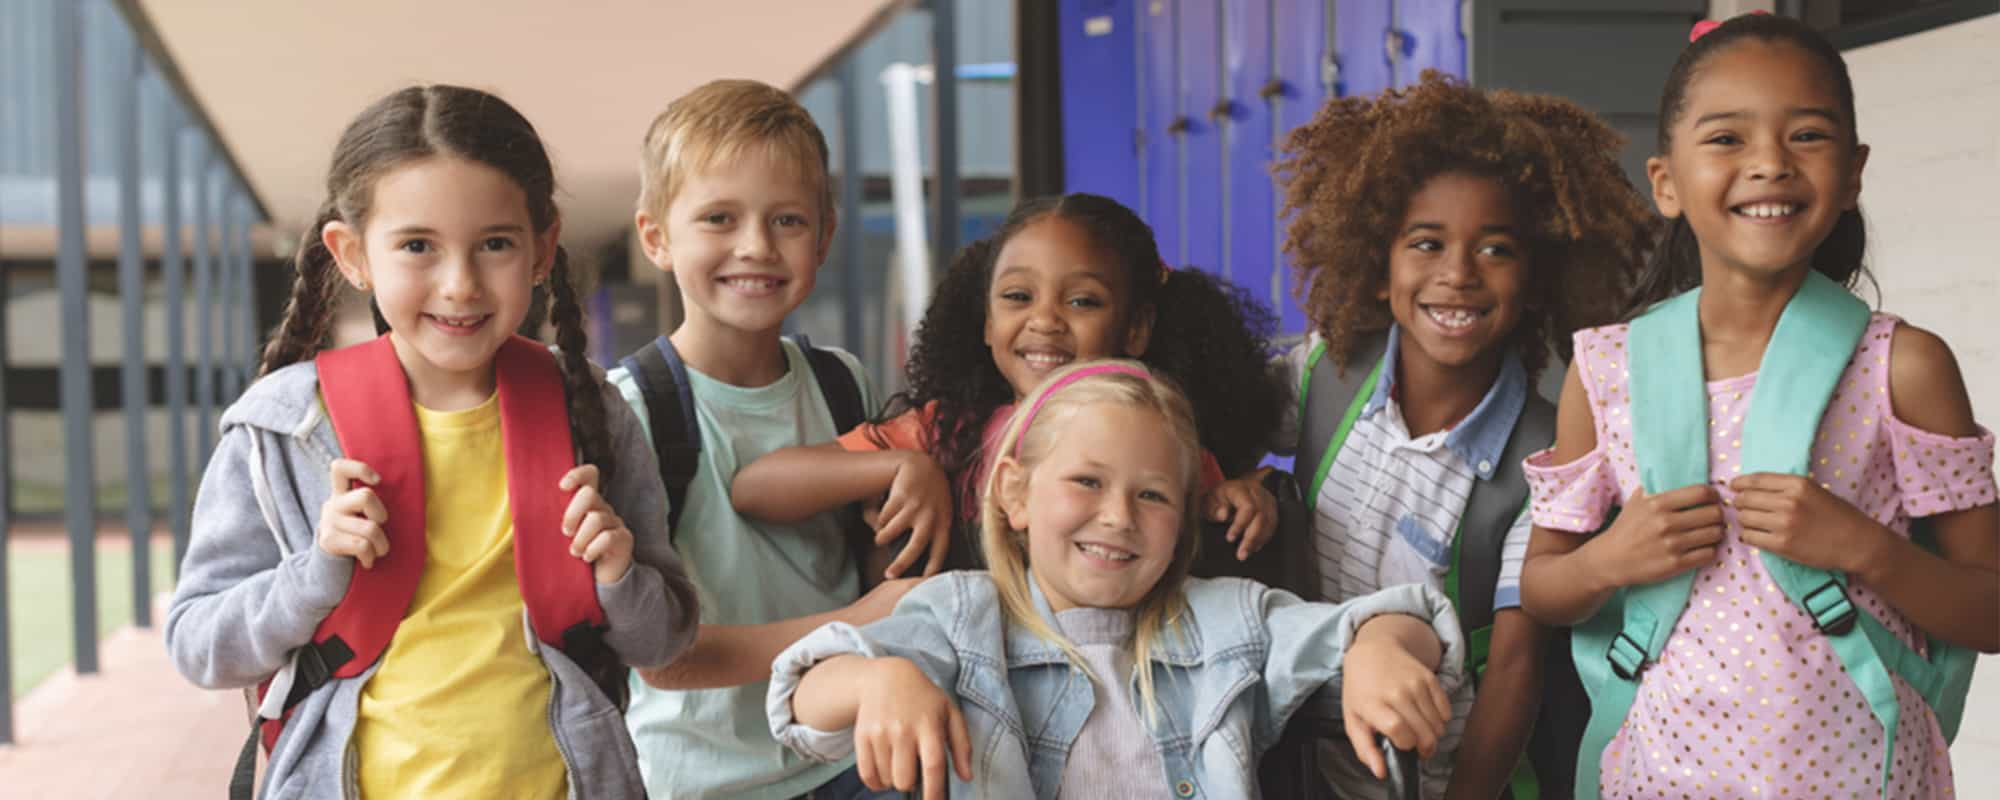 The Benefits of an Inclusive Education